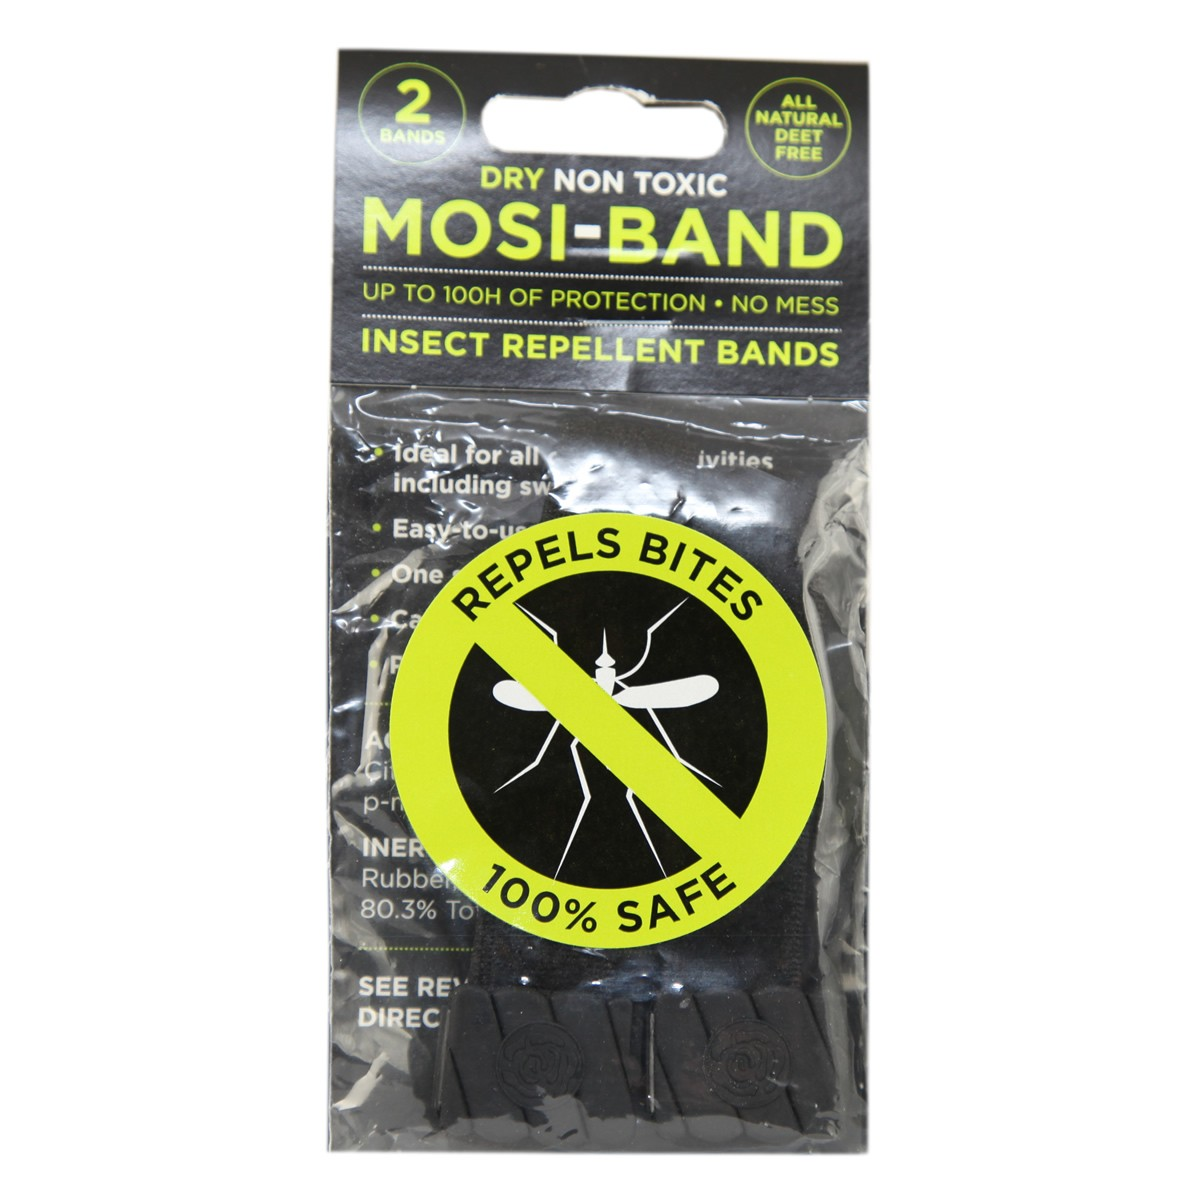 Mosi-Band Insect Repellent Bands Natural (Deet Free)